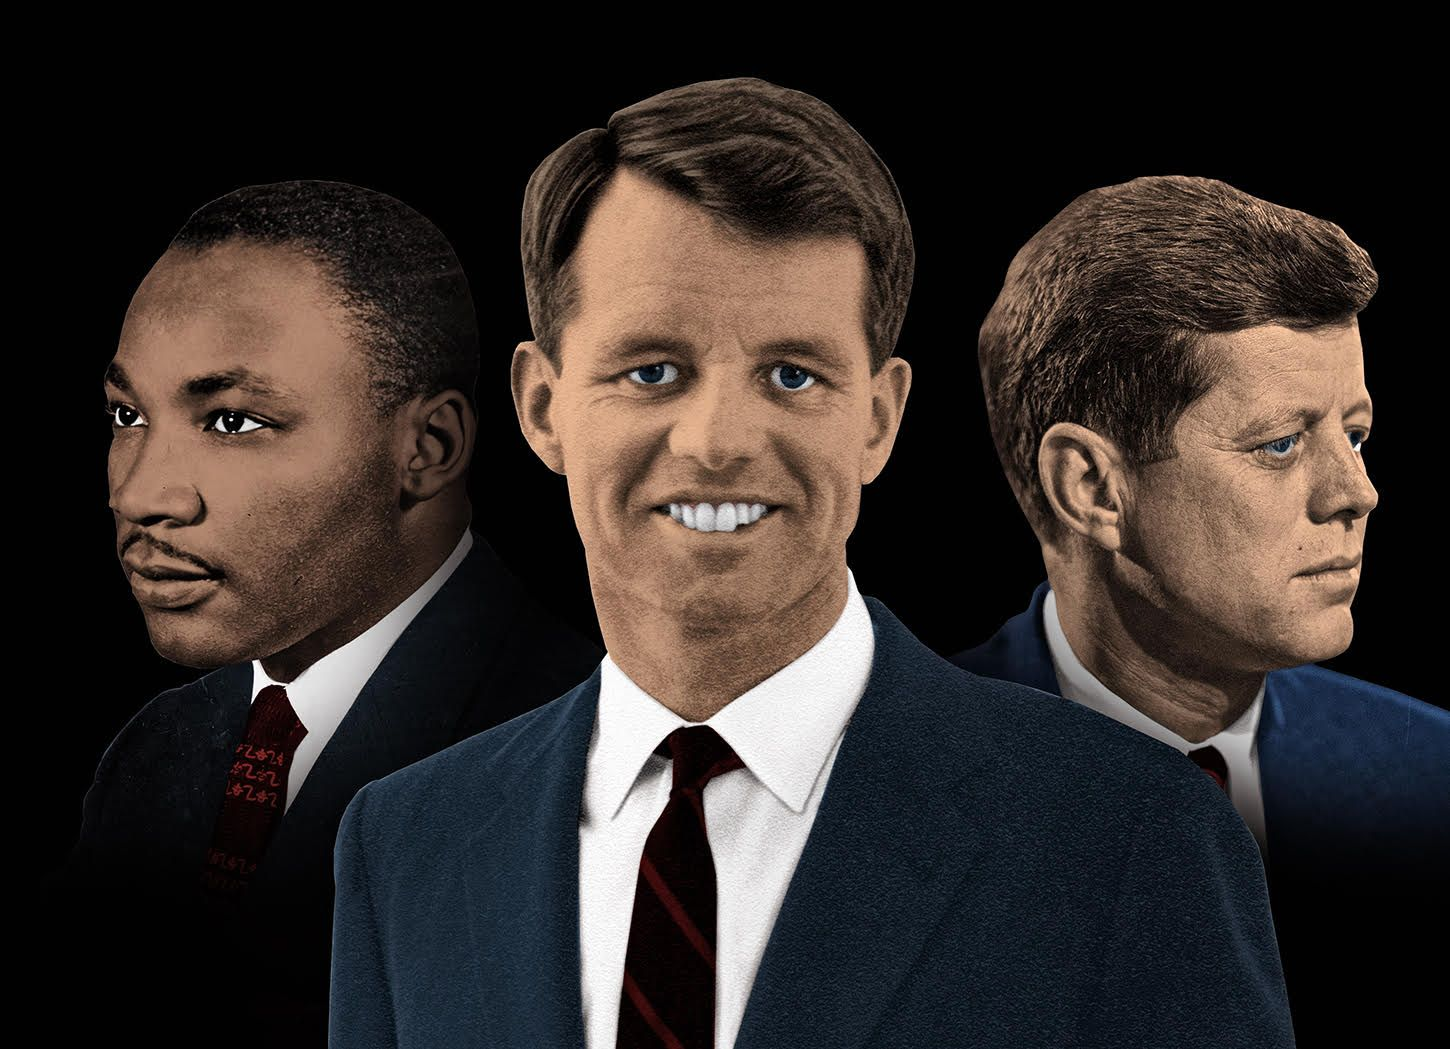 When Robert F Kennedy Died 50 Years Ago Something Died In All Of